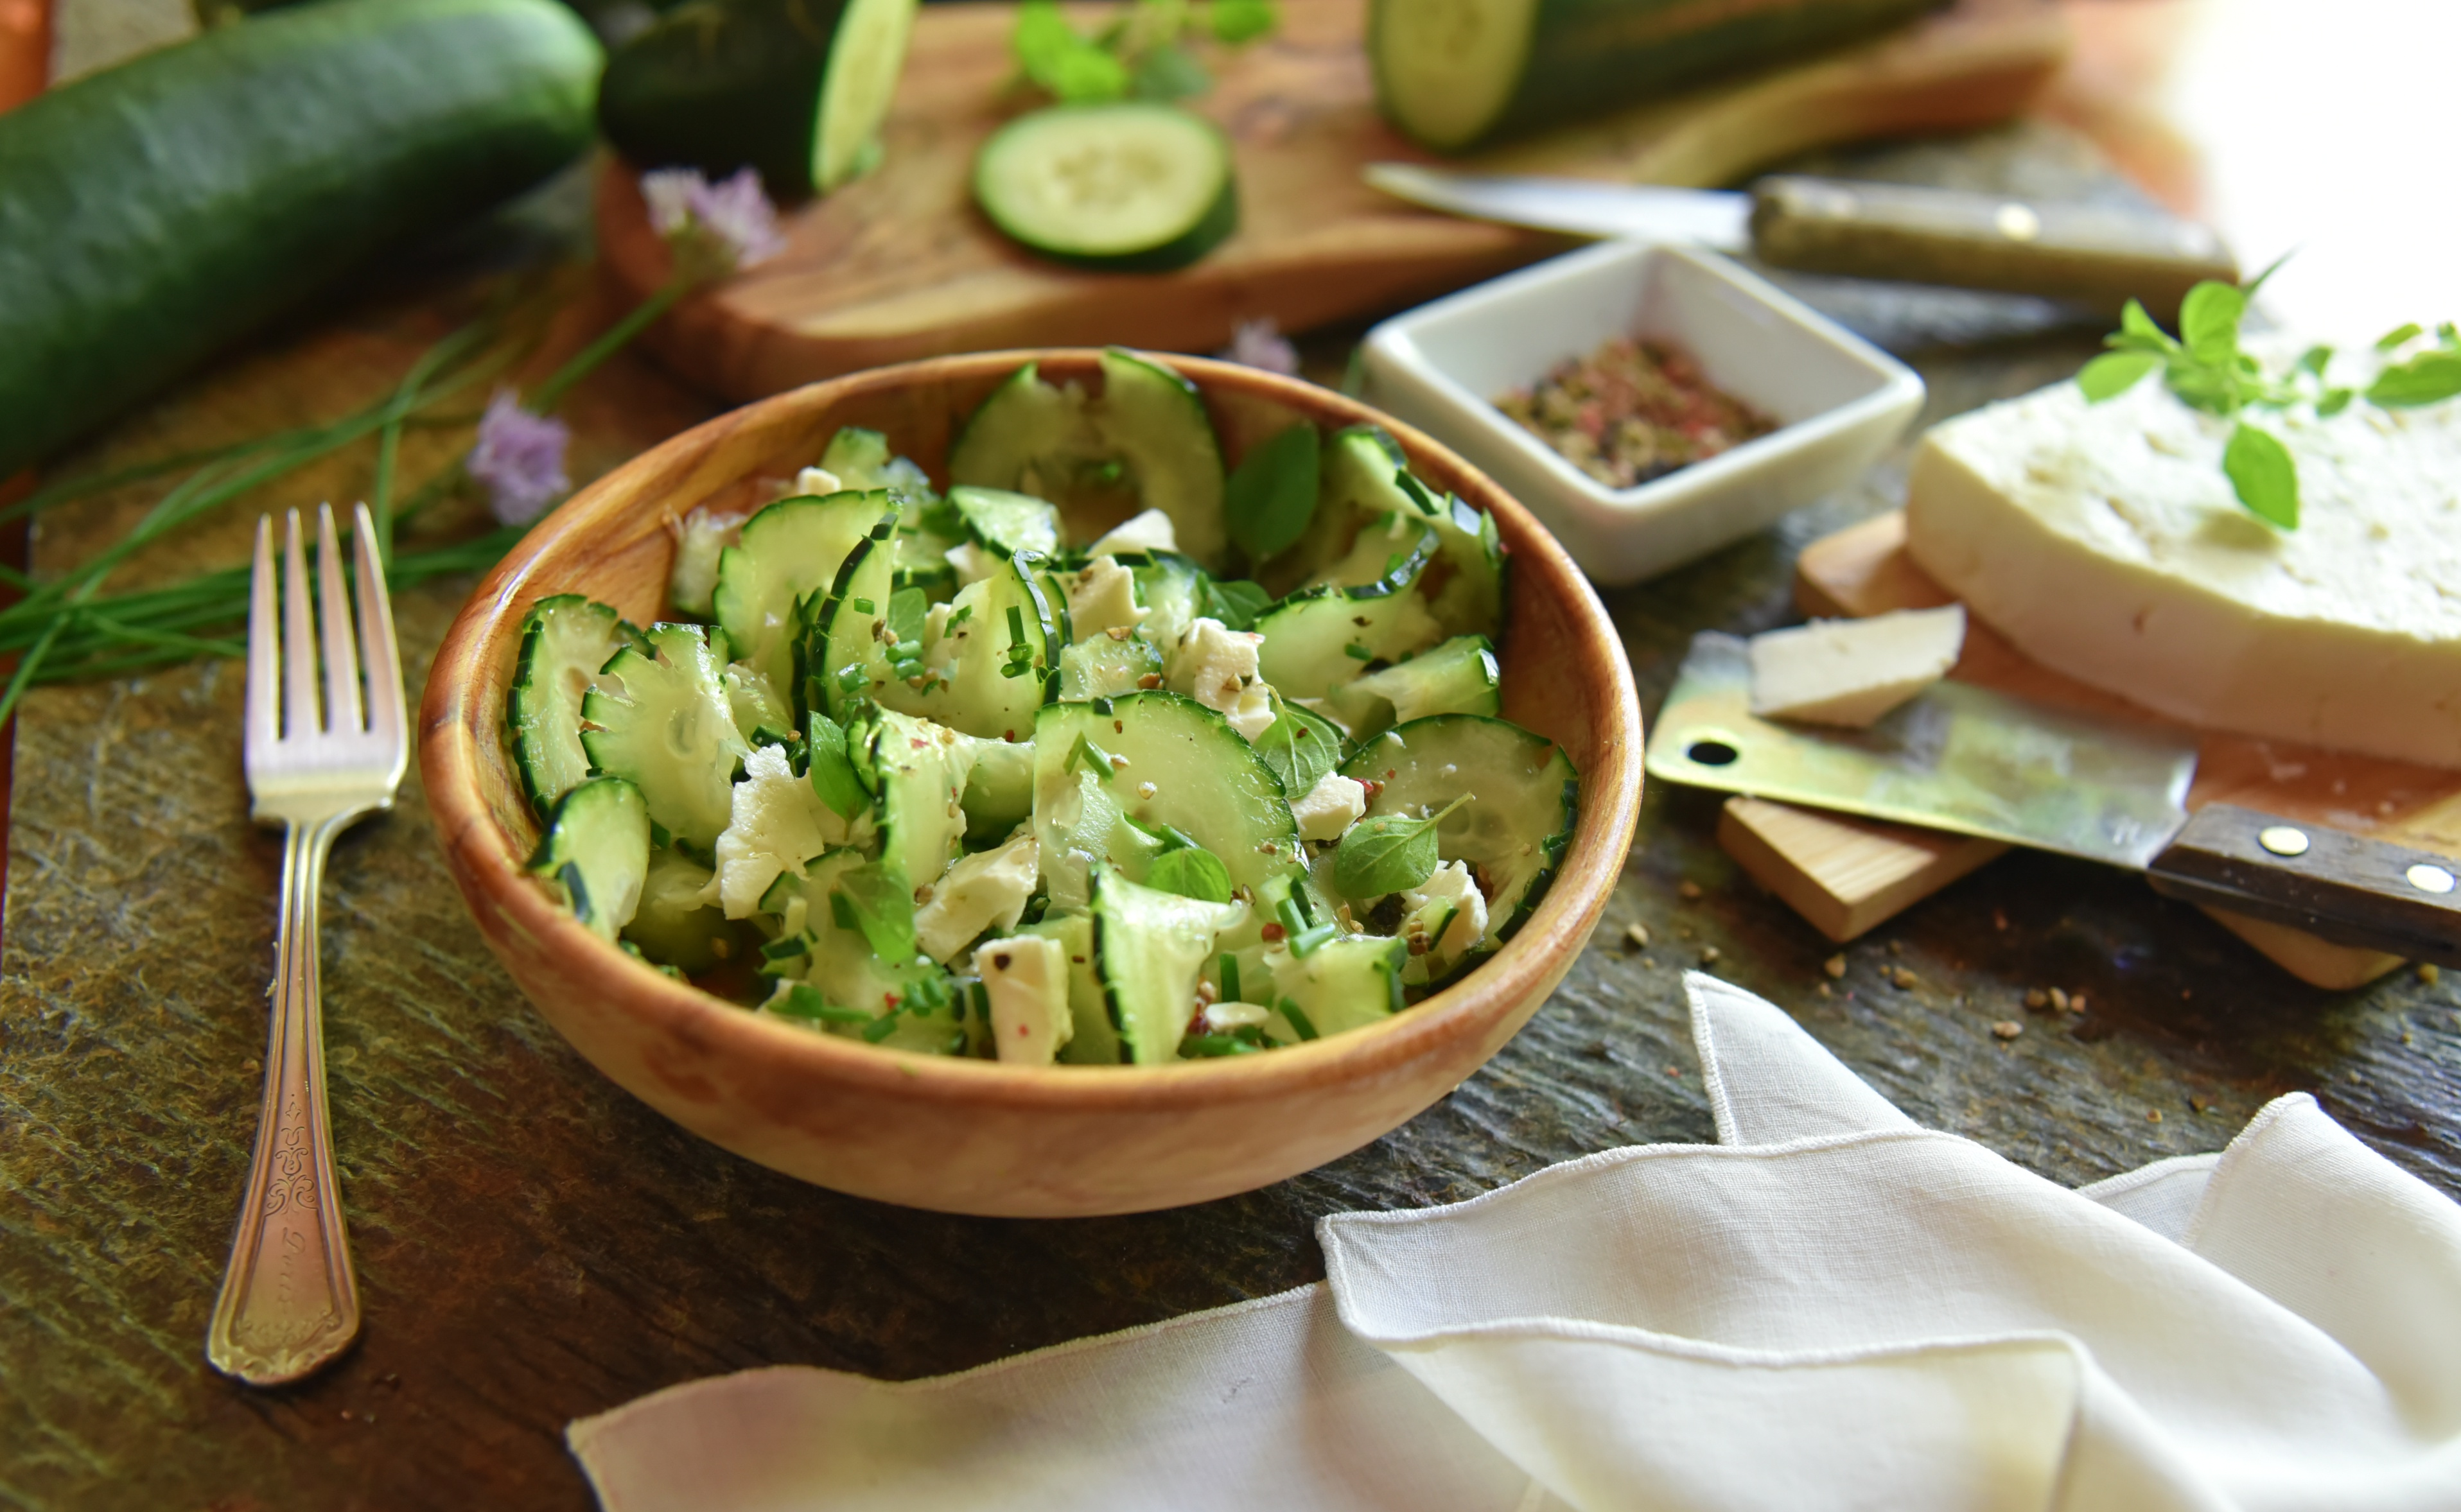 A refreshing, fresh, cucumber salad made with chives, feta cheese, avocado oil, and freshly-cracked peppercorns!